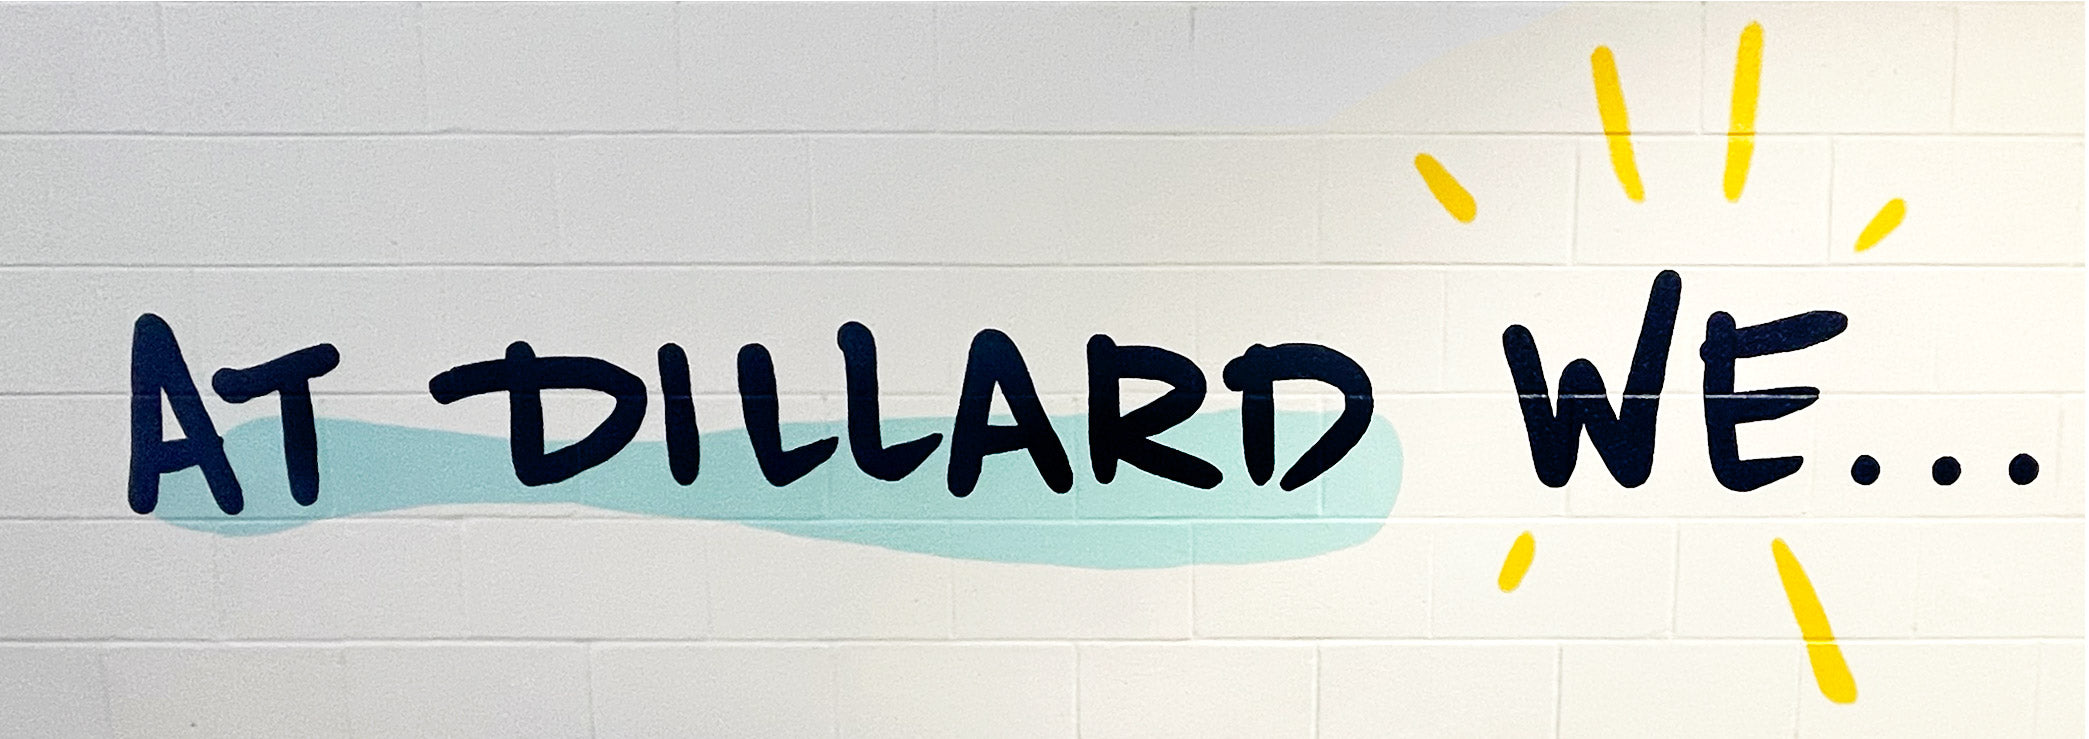 hand lettering At Dillard We... with yellow swashes radiating from the word we.